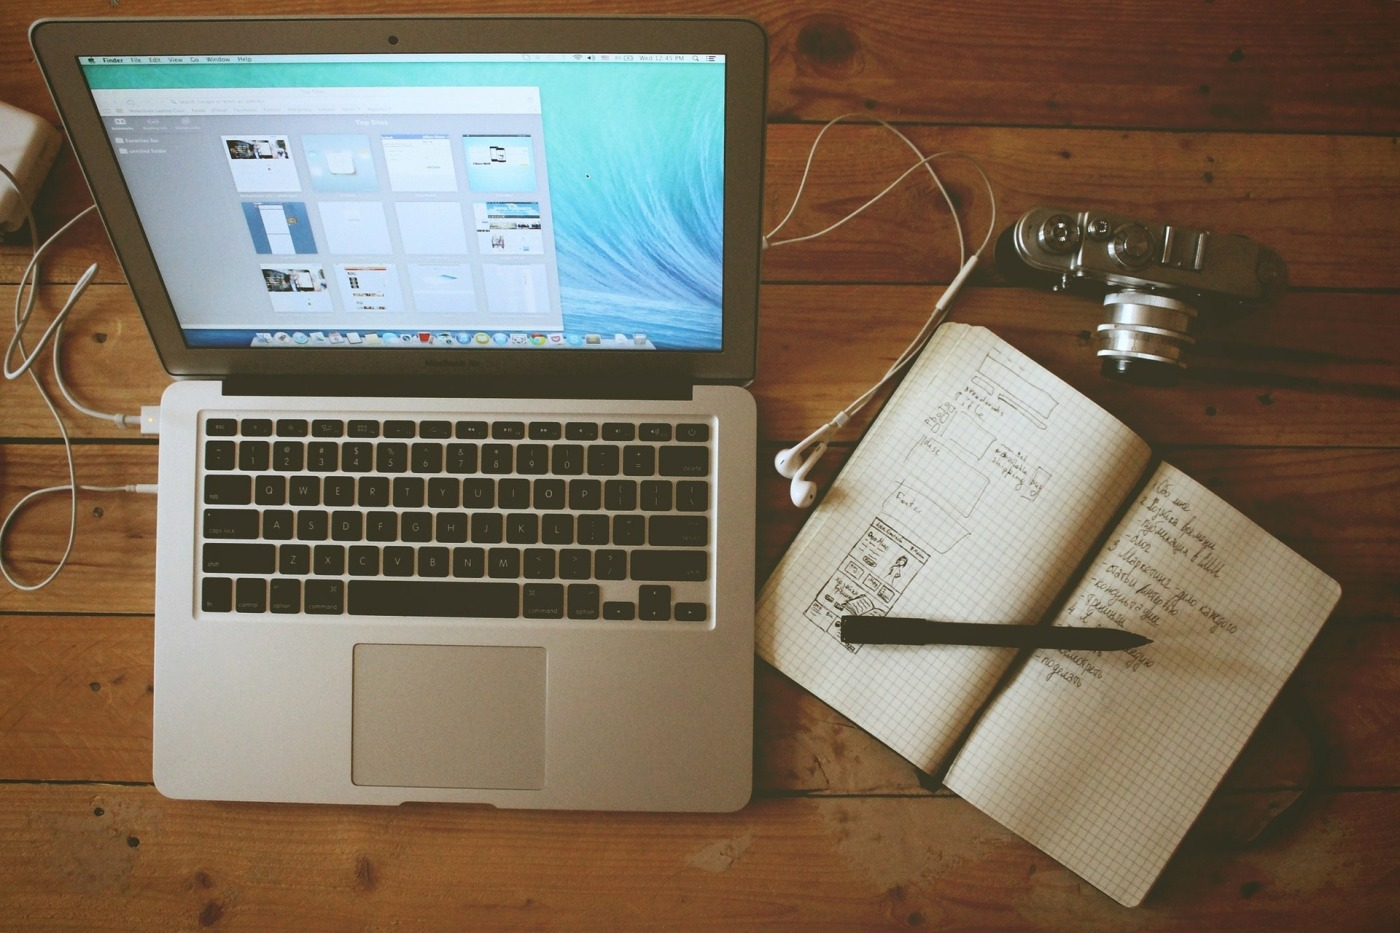 Image of laptop and notebook